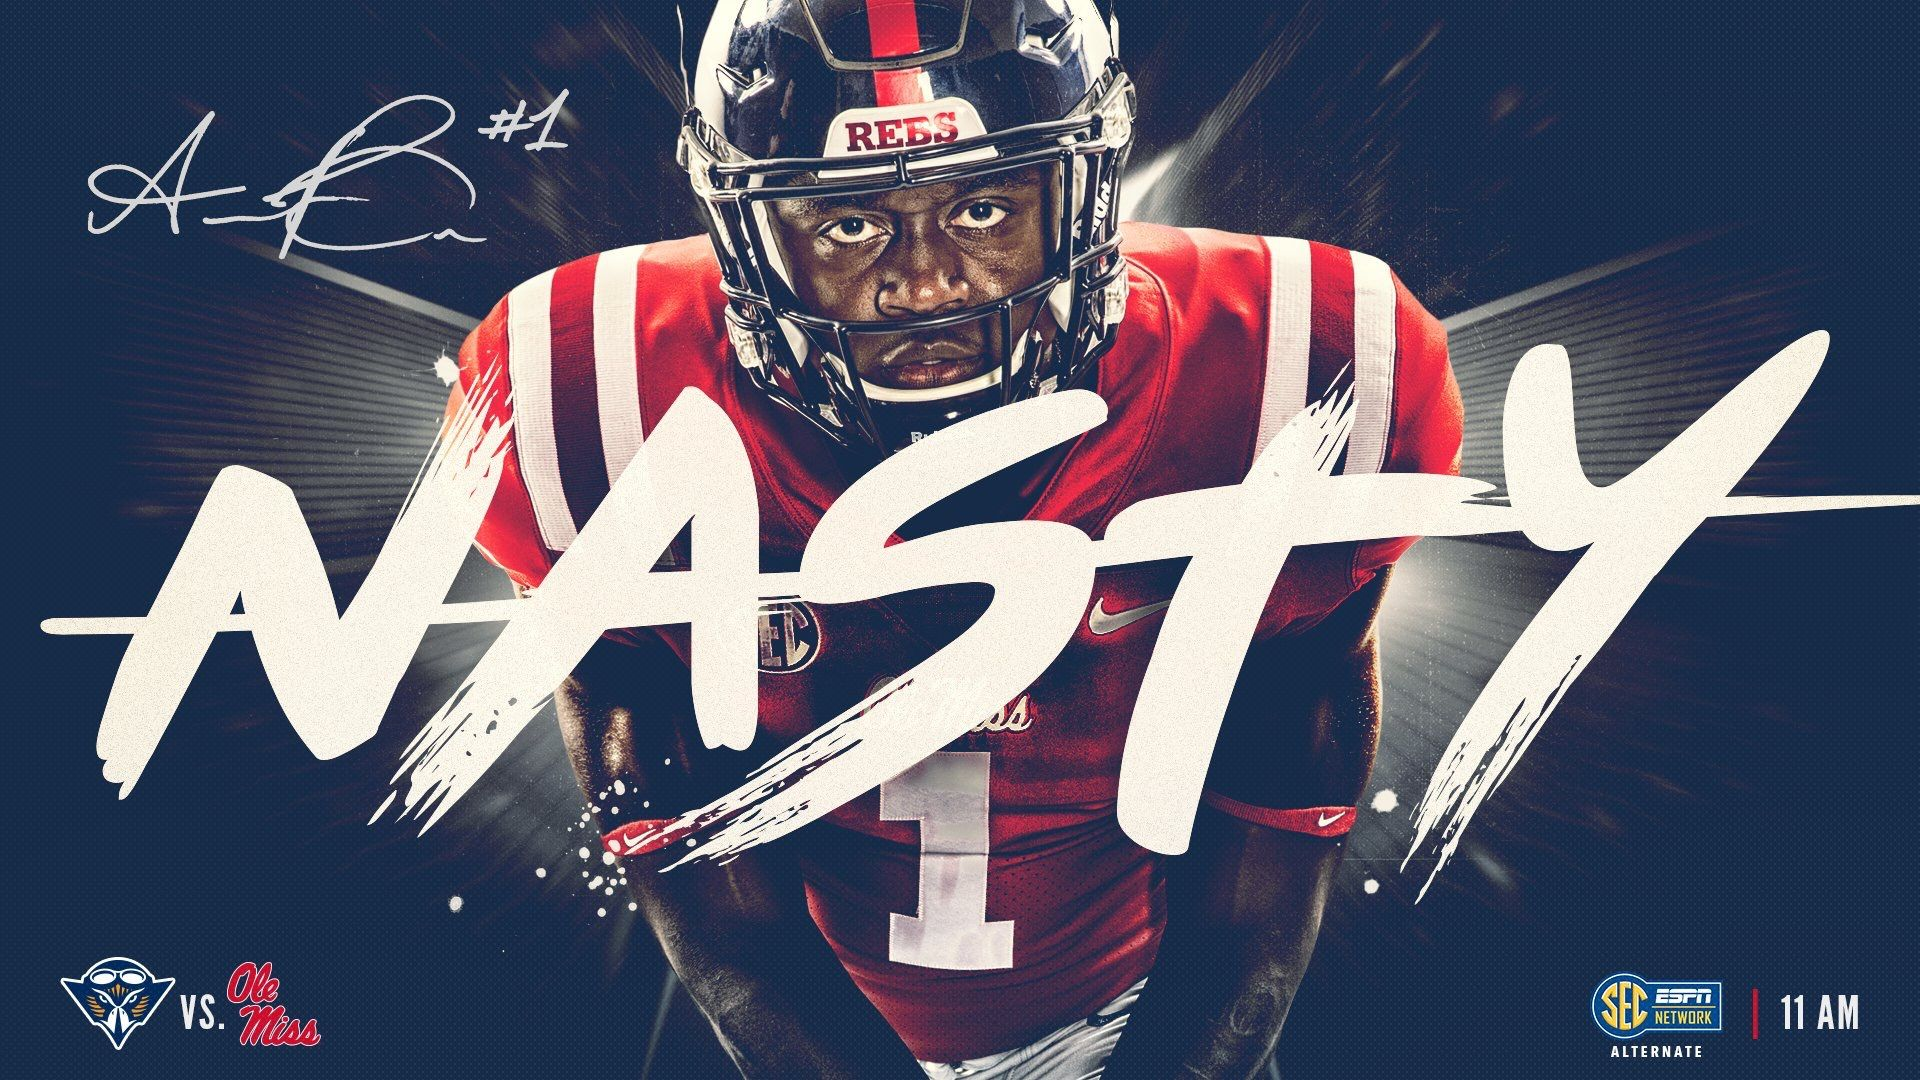 Ole miss with images football design sports design